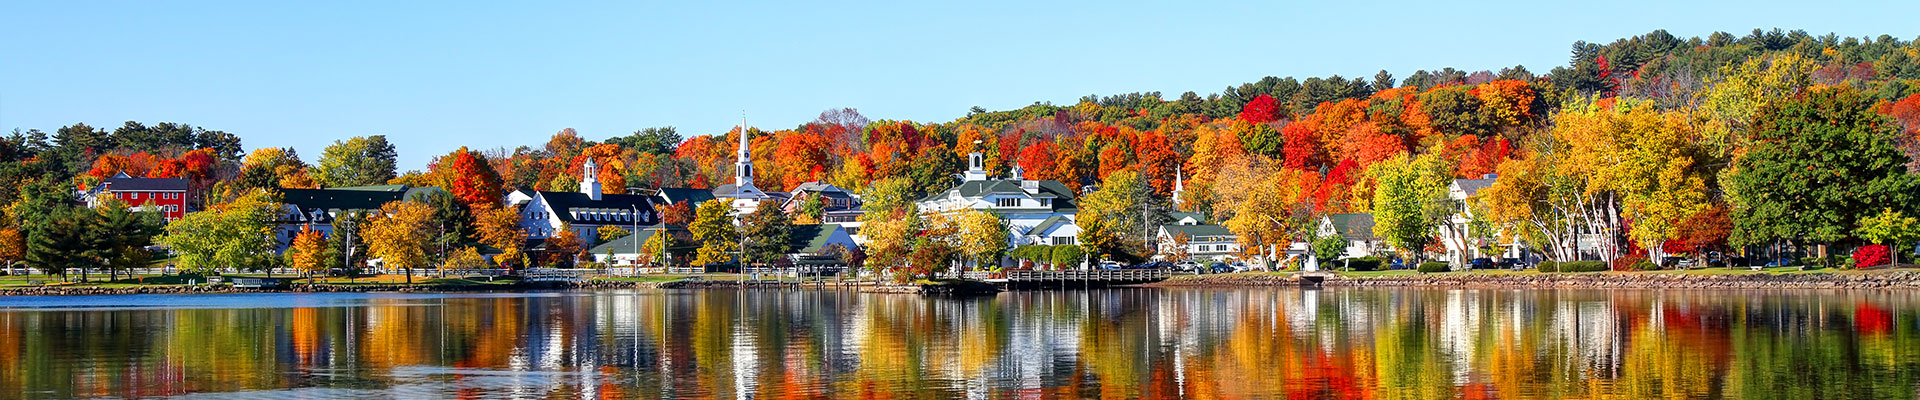 Fantasy RV Tours: 29 Day Autumn in New England (29UANP-092019)